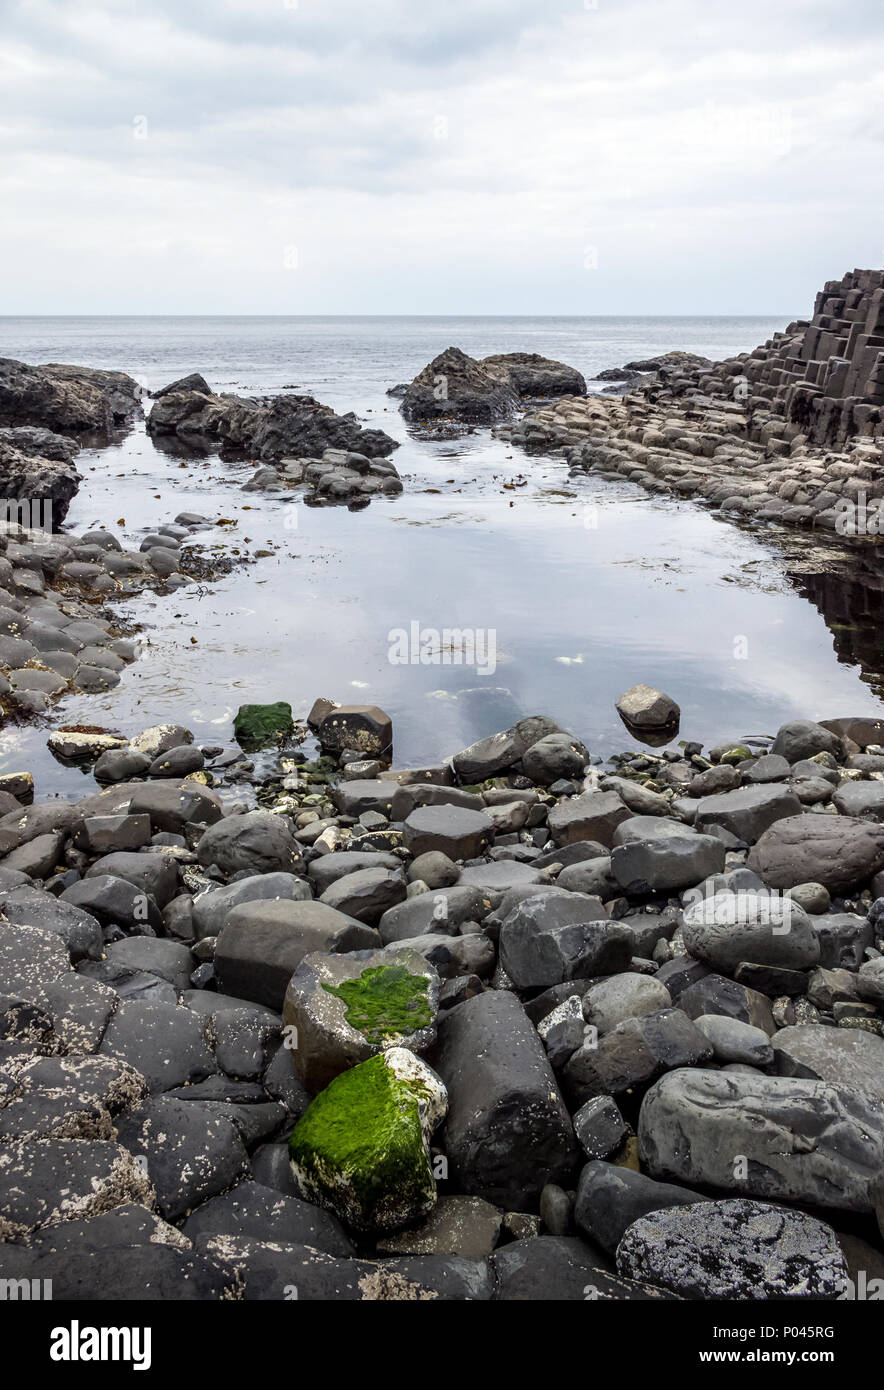 The Giant's Causeway. A popular tourist attraction. - Stock Image